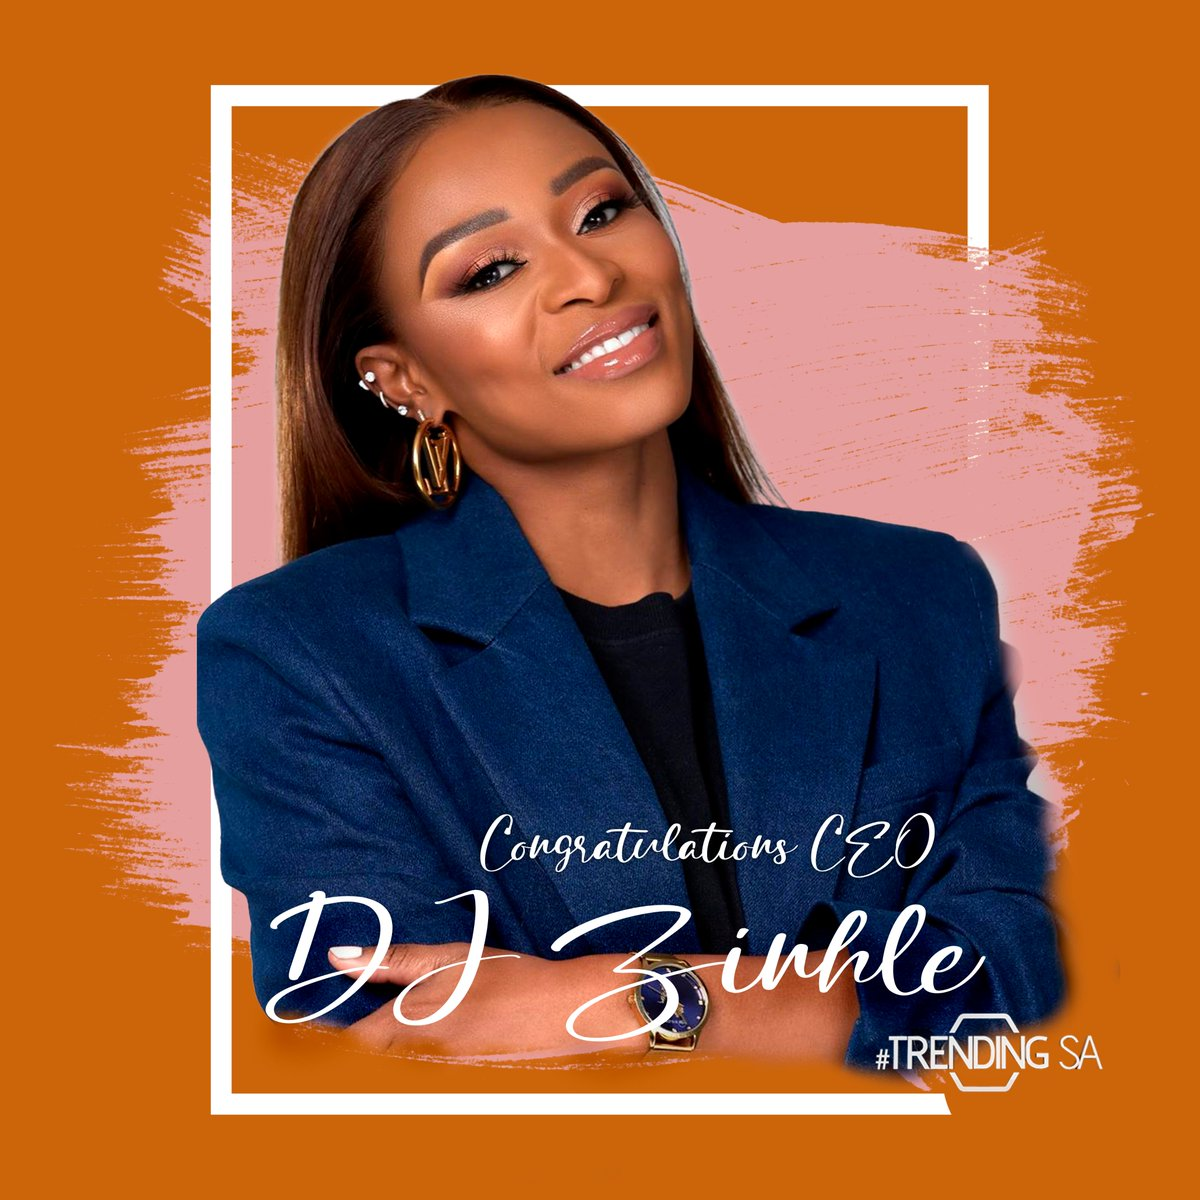 Congratulations CEO  Award winning Forbes Africa Entertainer of the Year, DJ, and business woman @Djzinhle has acquired a stake in Boulevard Rose. Join us tonight as we celebrate and unpack the powerhouse that is @DJZinhle   Tune in tonight at 18:00 on @SABC3 https://t.co/PxCTFlFxwJ